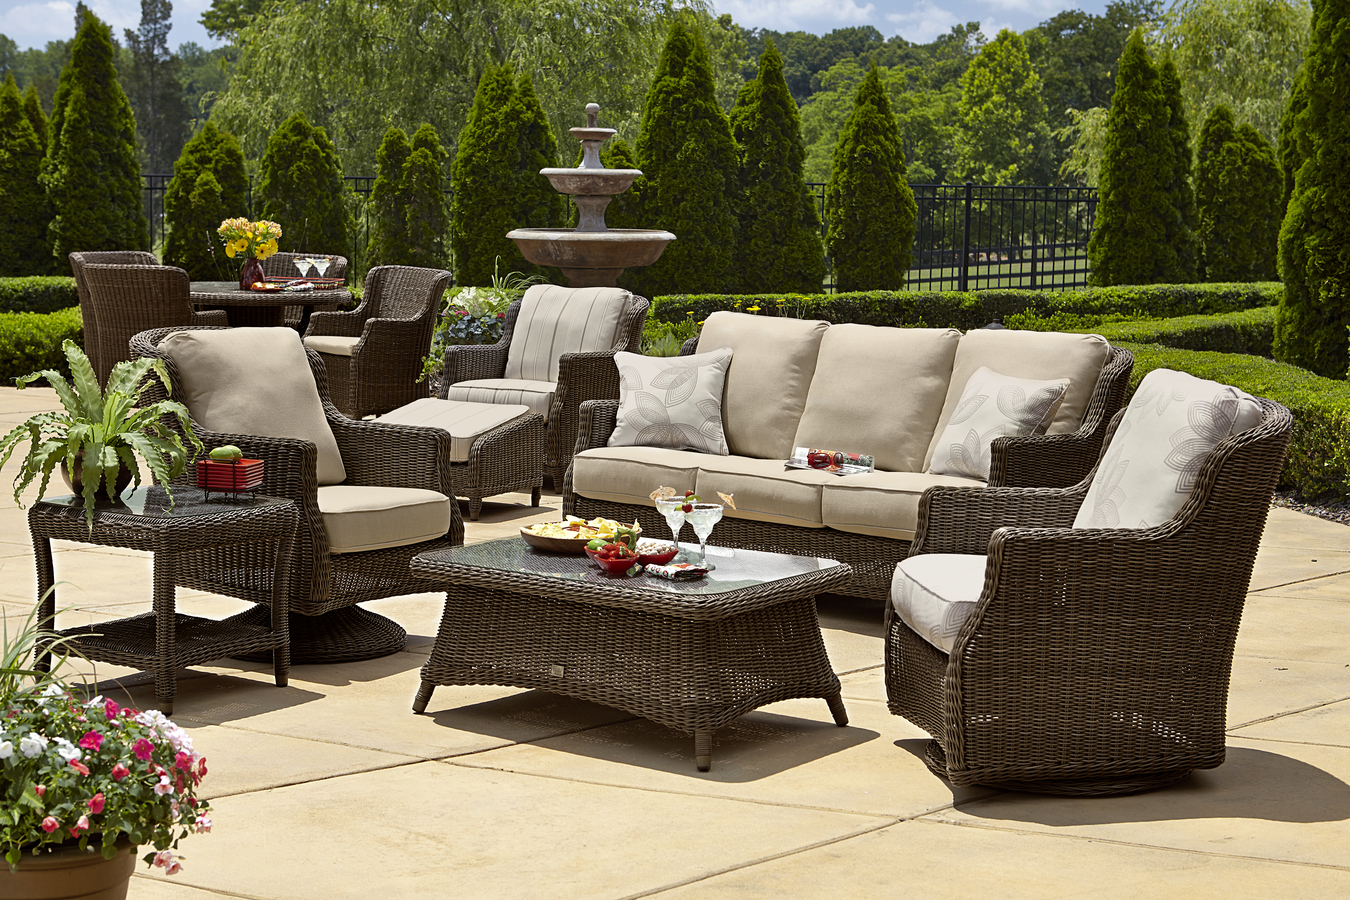 hd design sofa best sofas wicker sunset photo west set outdoor ideas of sectional